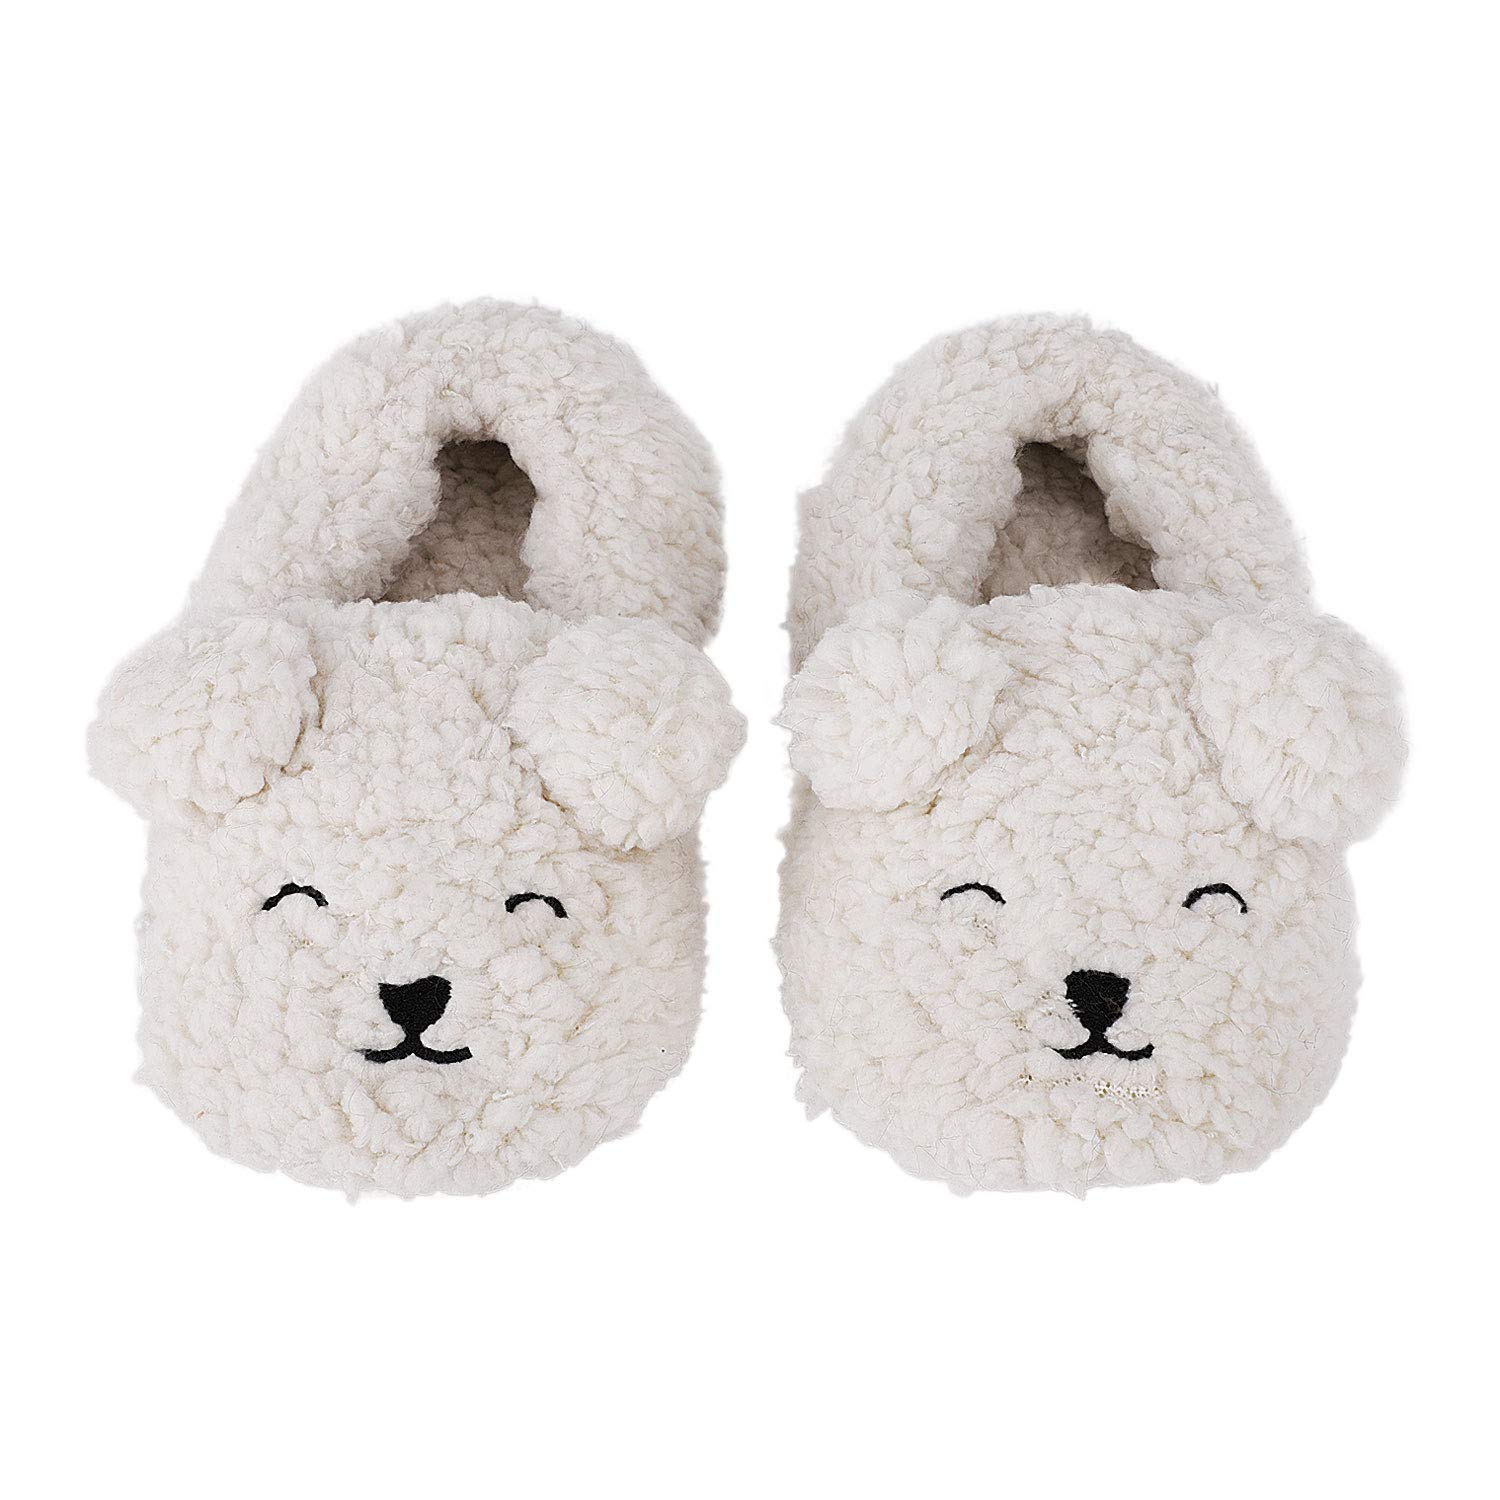 Greenery-GRE Warm Fleece Indoor Slippers for Toddler Kids Cartoon Animal Soft Cozy Booties Non-Slip Plush Winter House Shoes Ankle Boots